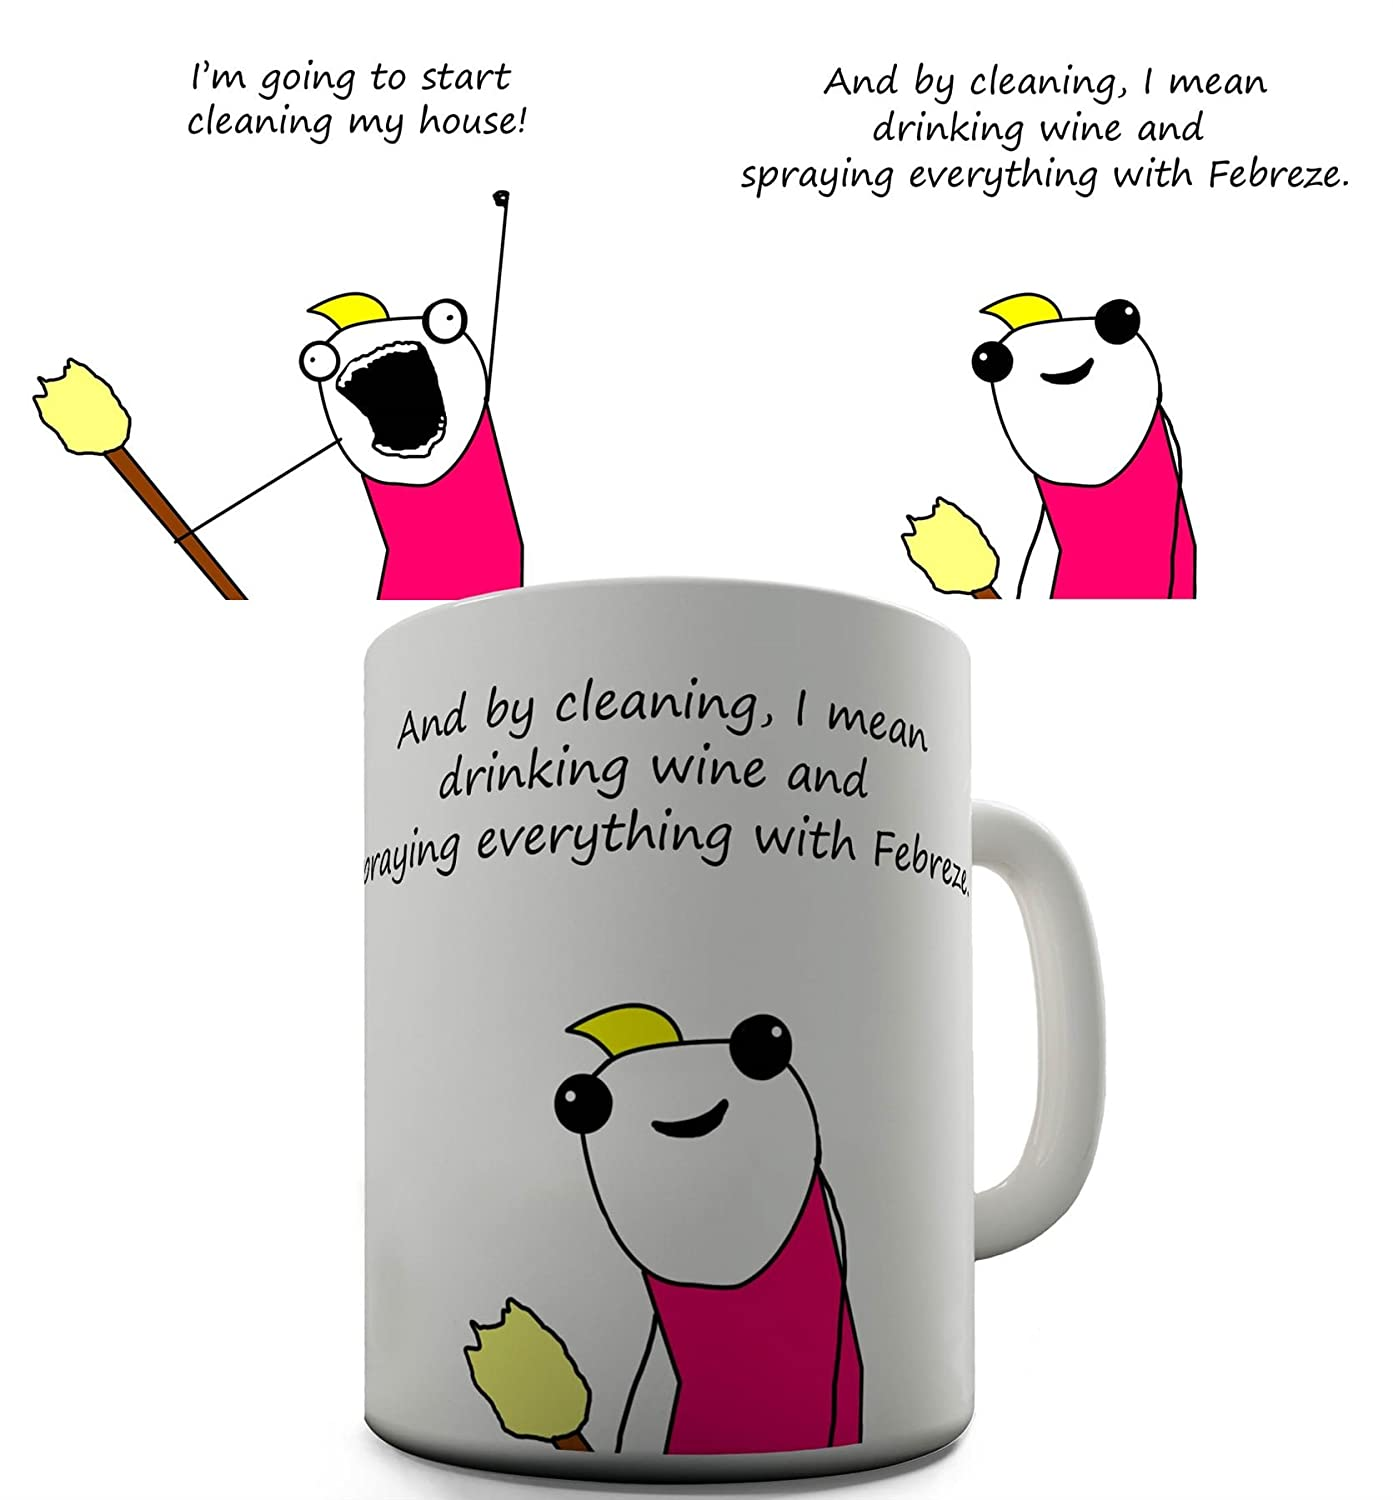 Twisted Envy Funny Cleaning The House Ceramic Novelty Gift